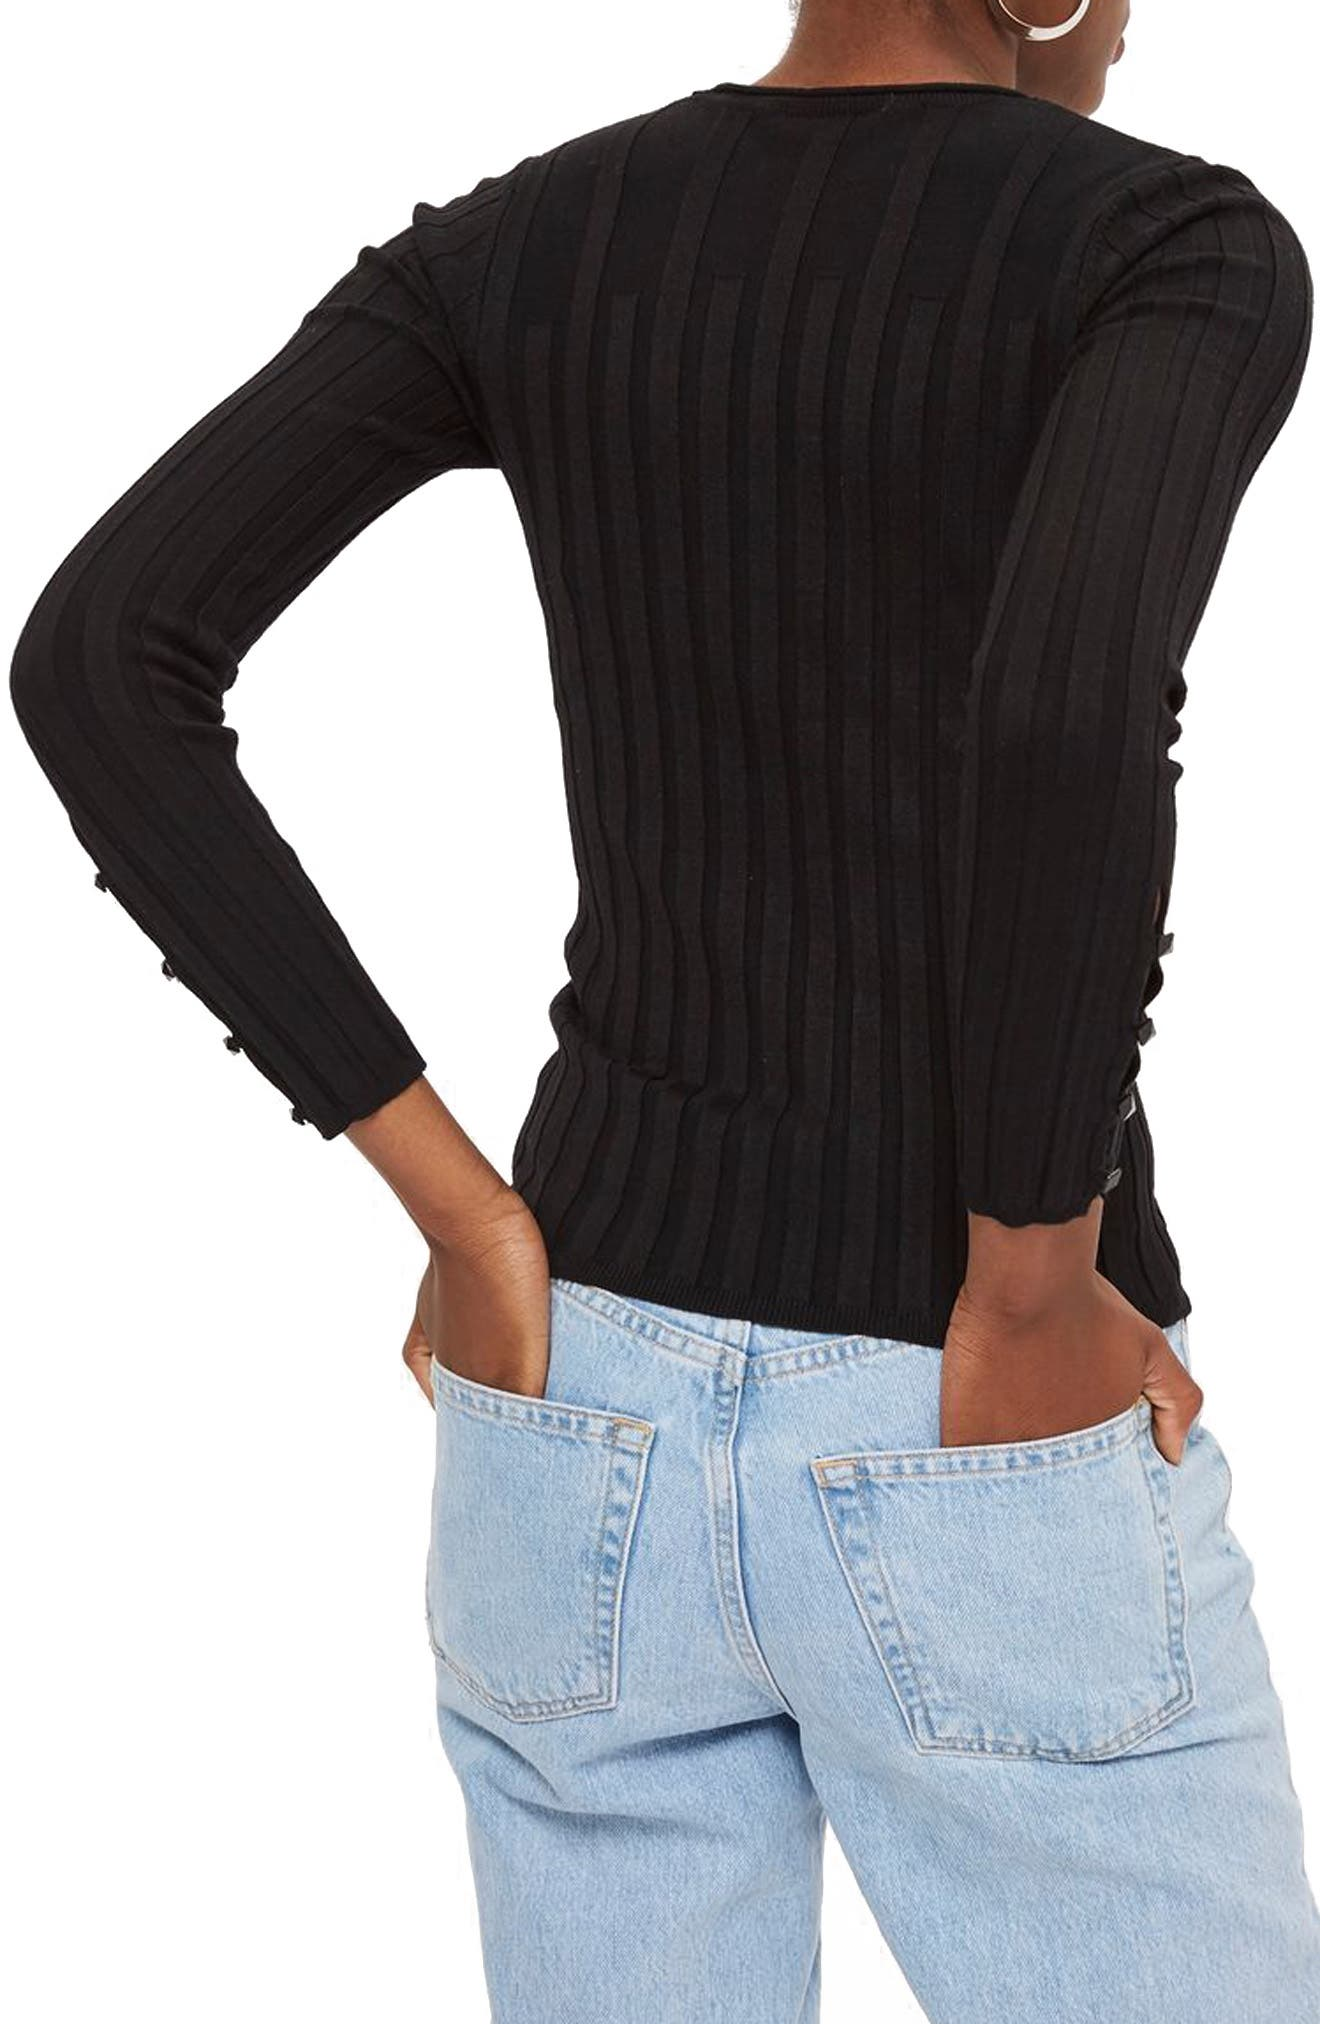 Popper Crew Sweater,                             Alternate thumbnail 2, color,                             BLACK